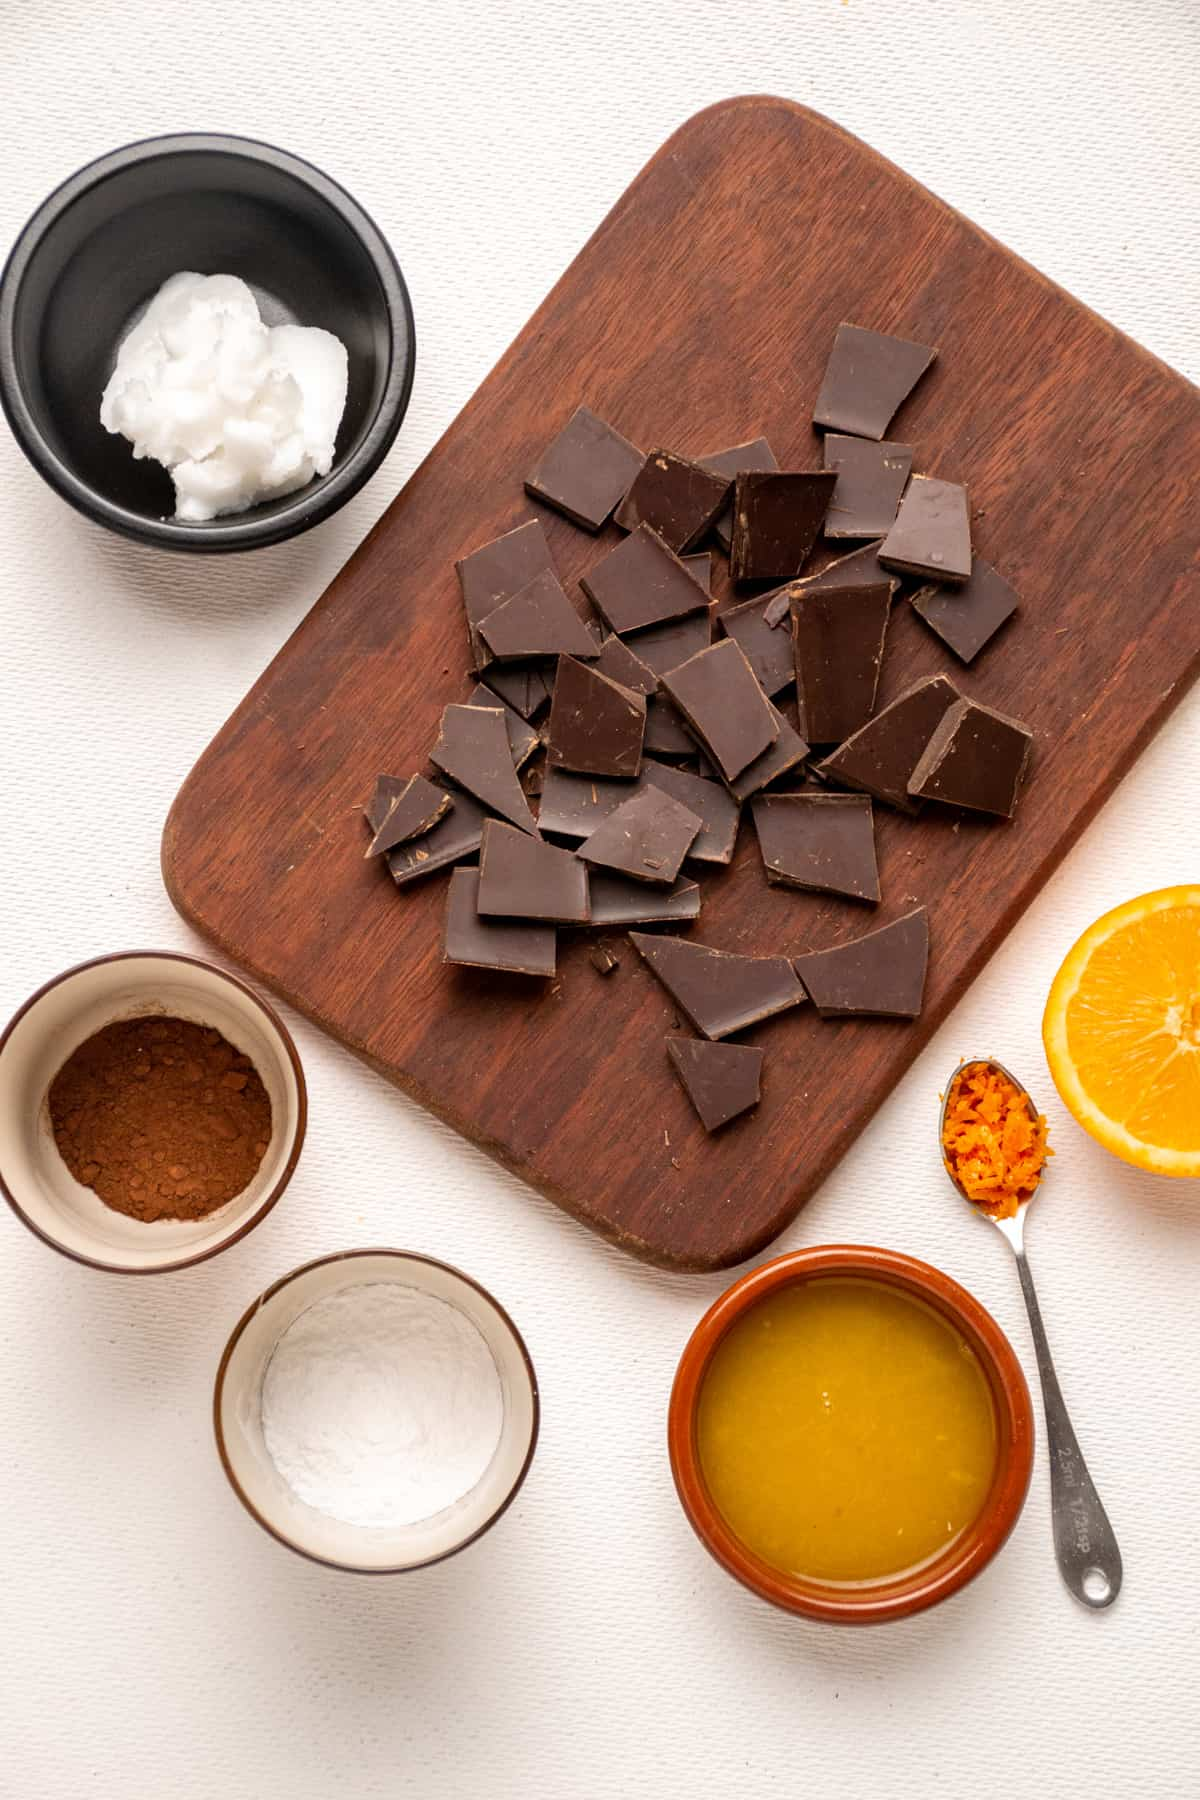 A wooden board with chocolate and small dishes containing orange juice, sugar, cocoa, coconut oil and a spoonful of zest.